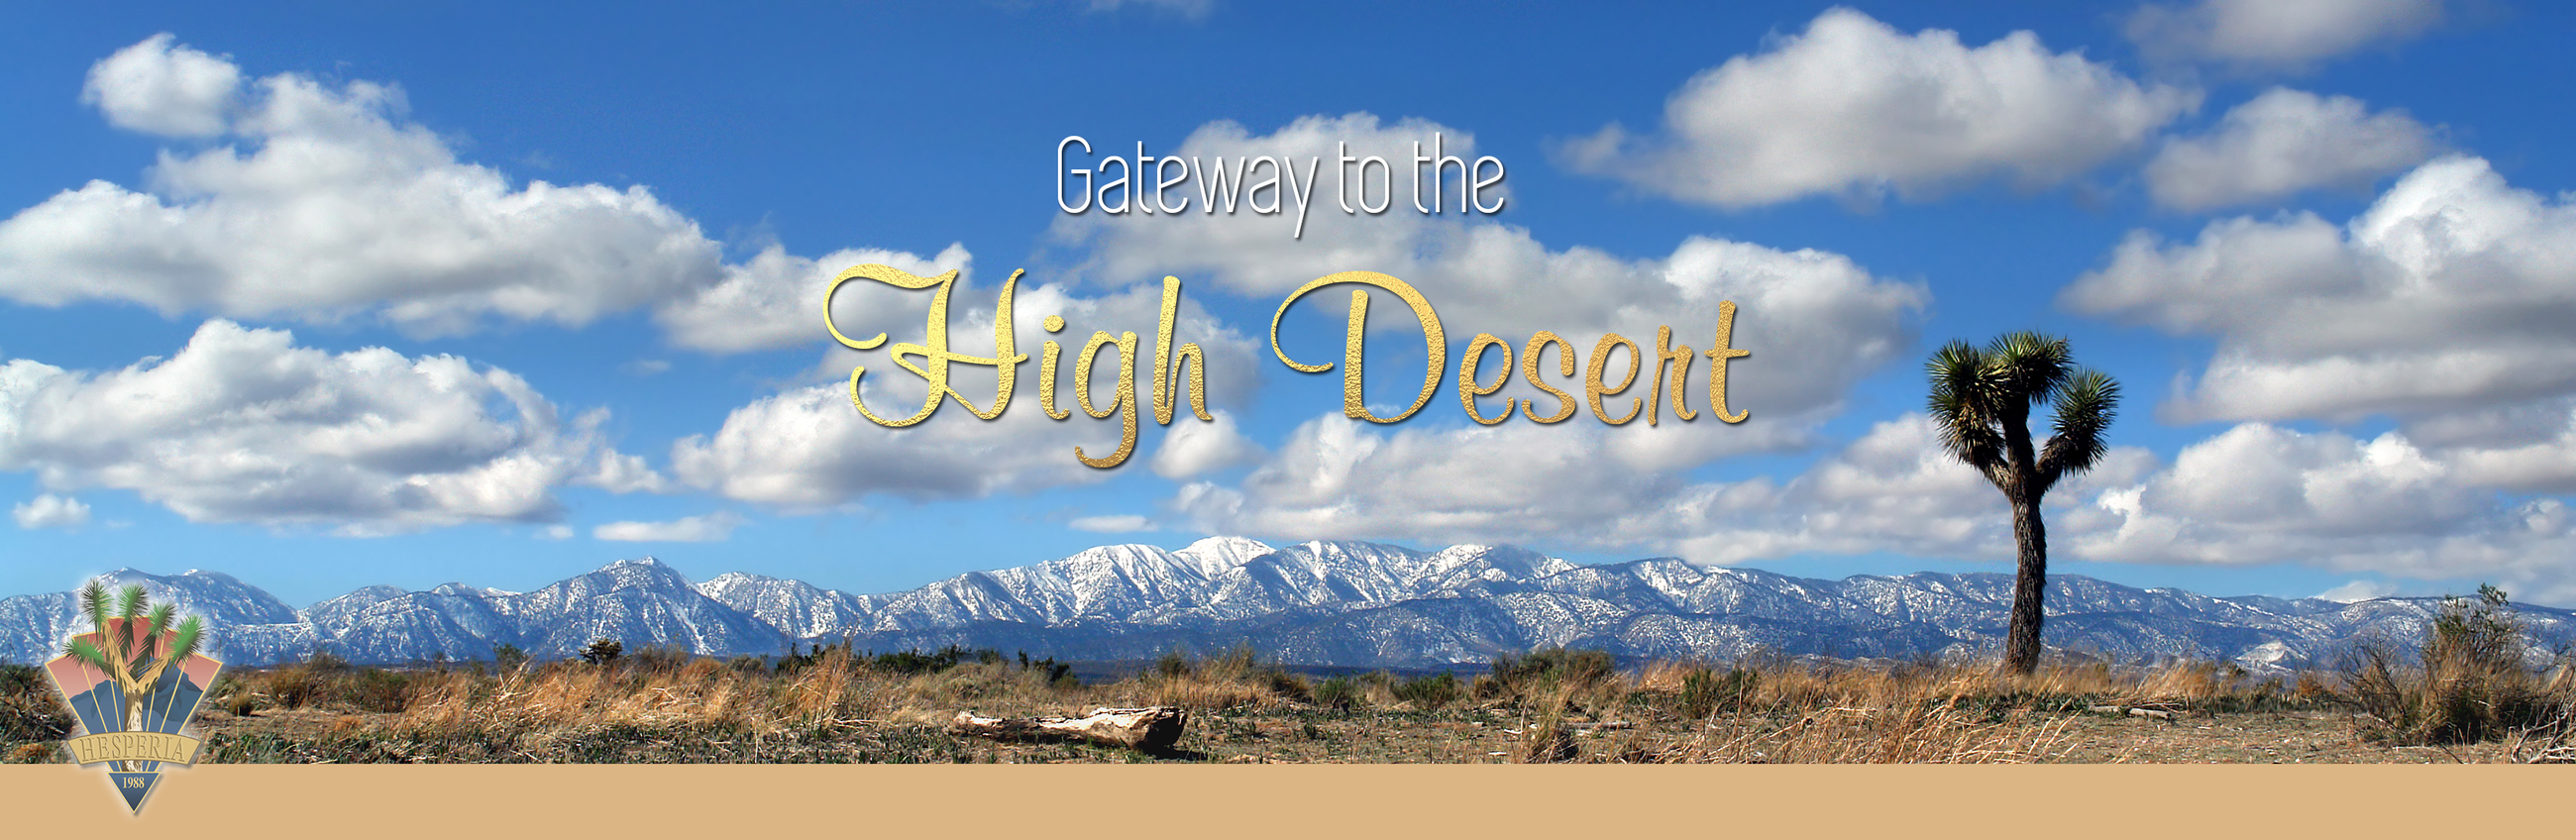 Gateway to the High Desert